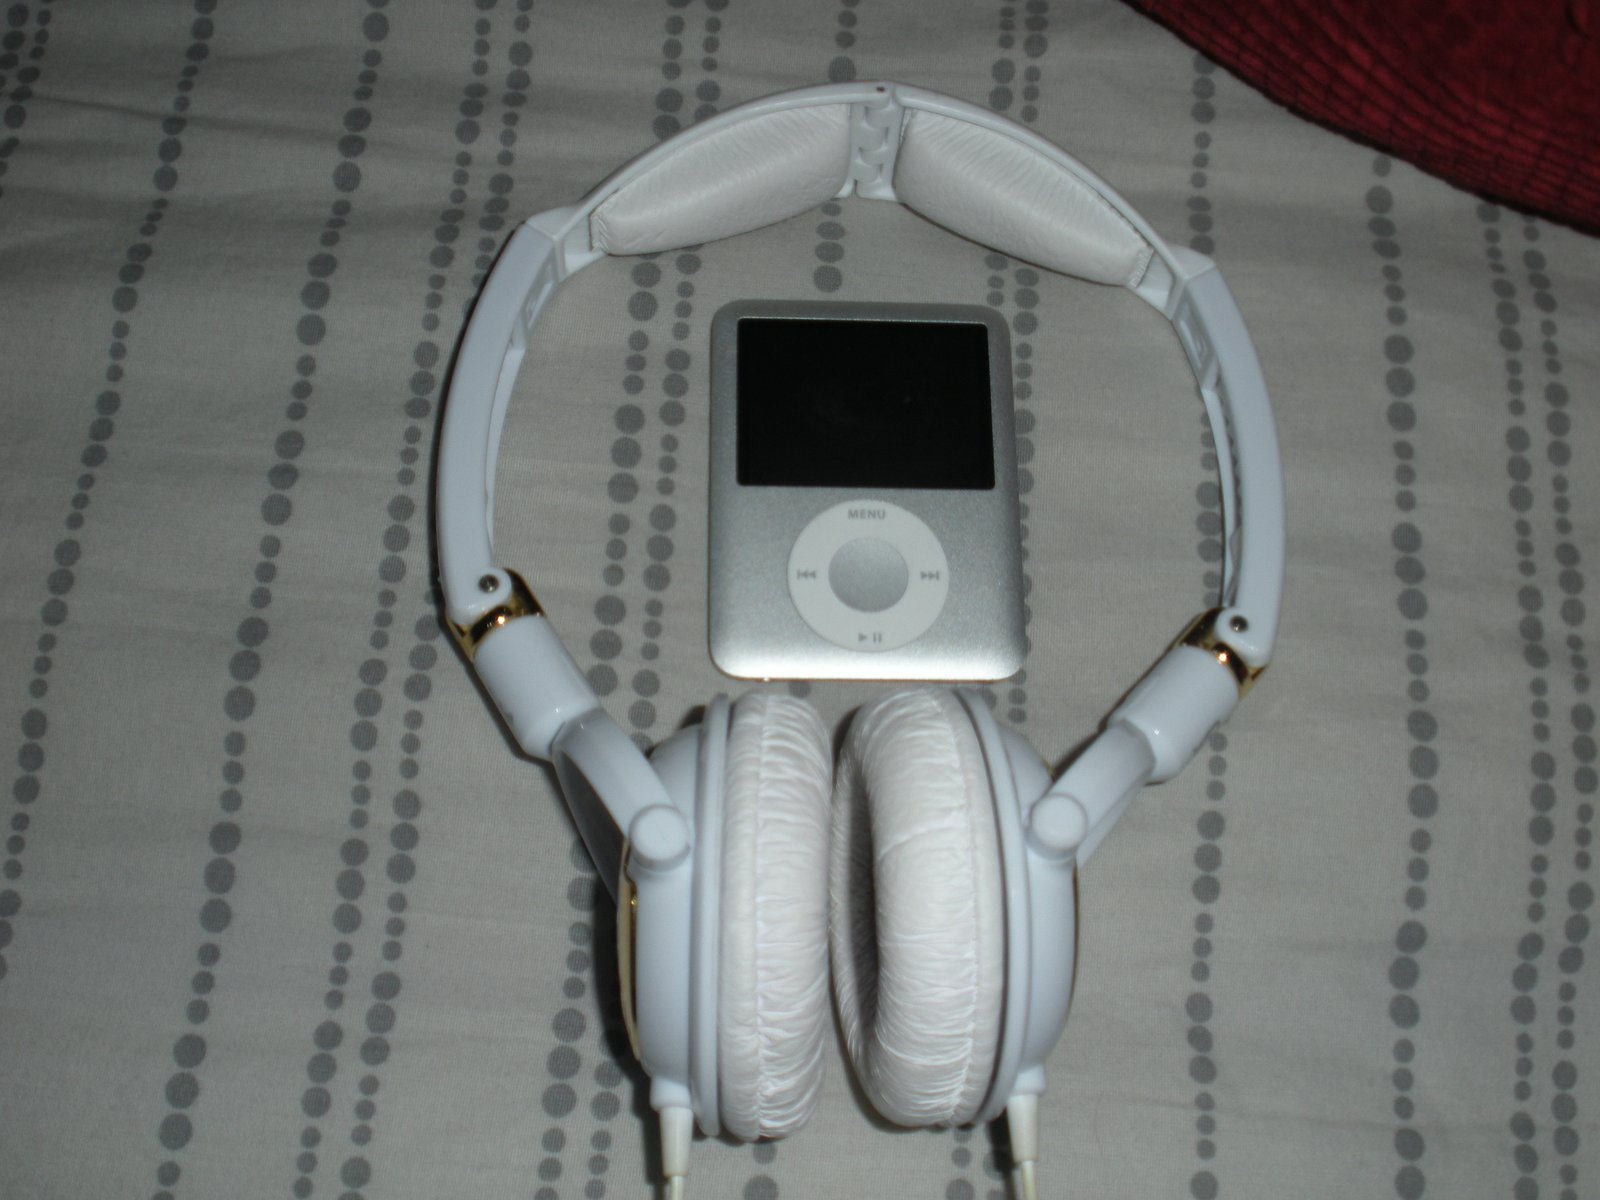 Ipod and headphones front